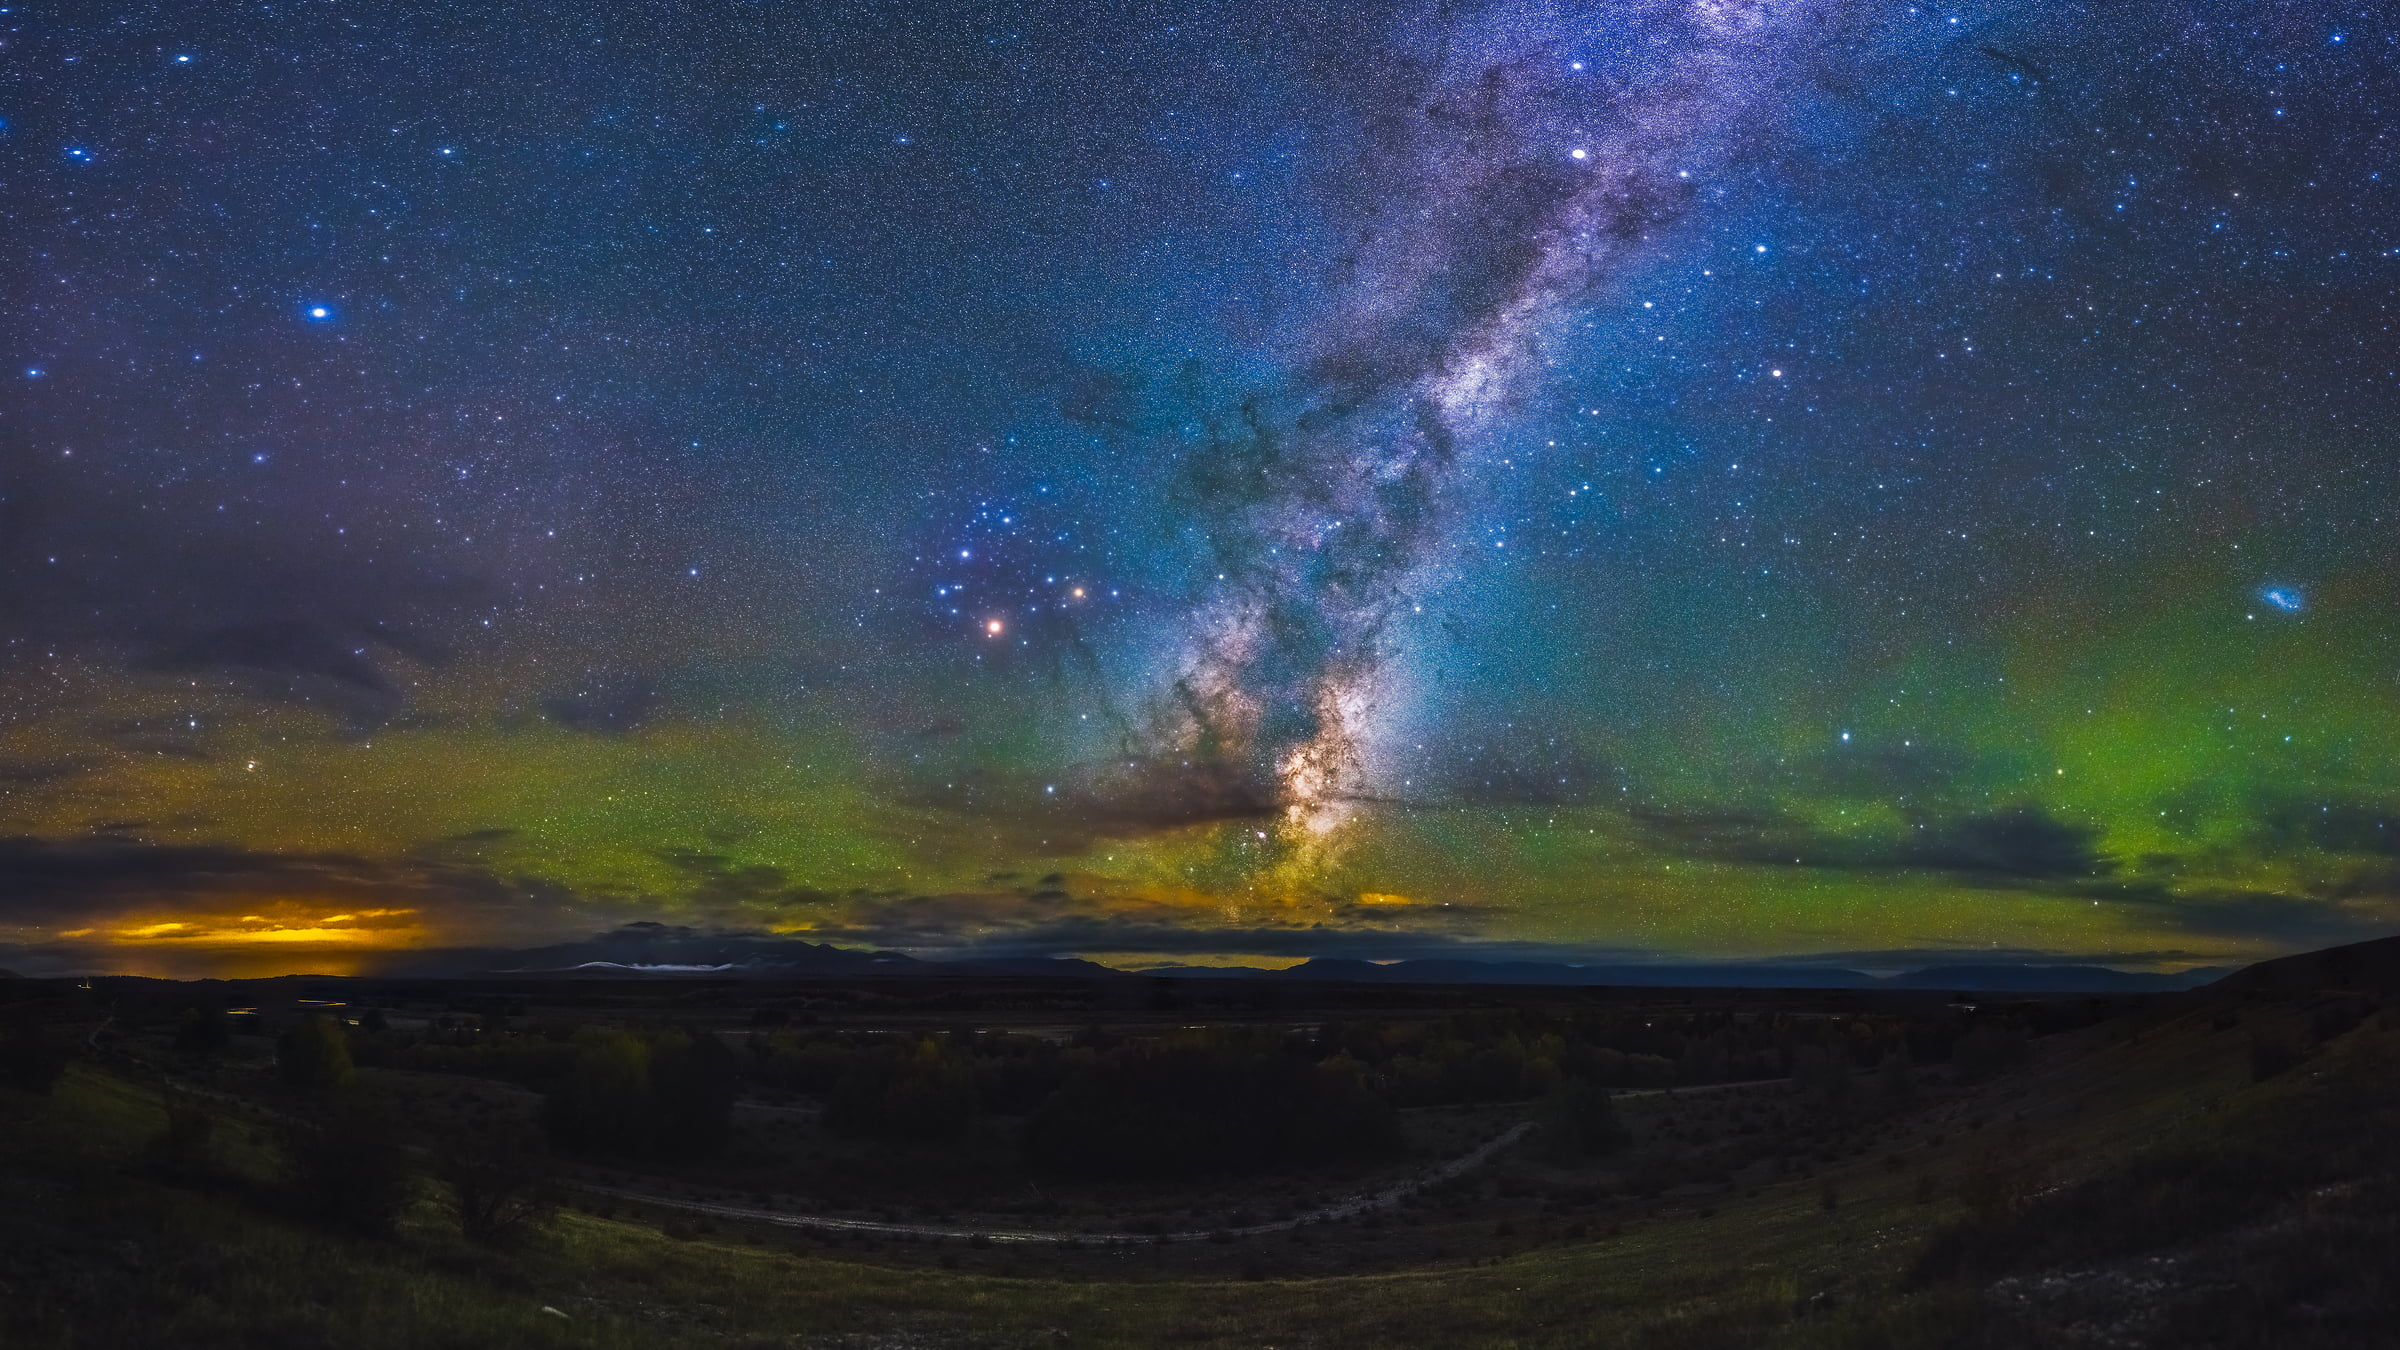 306 megapixels! A very high resolution, large-format VAST photo print of the night sky, milky way, and stars; fine art astrophotography landscape photo created by Paul Wilson in New Zealand